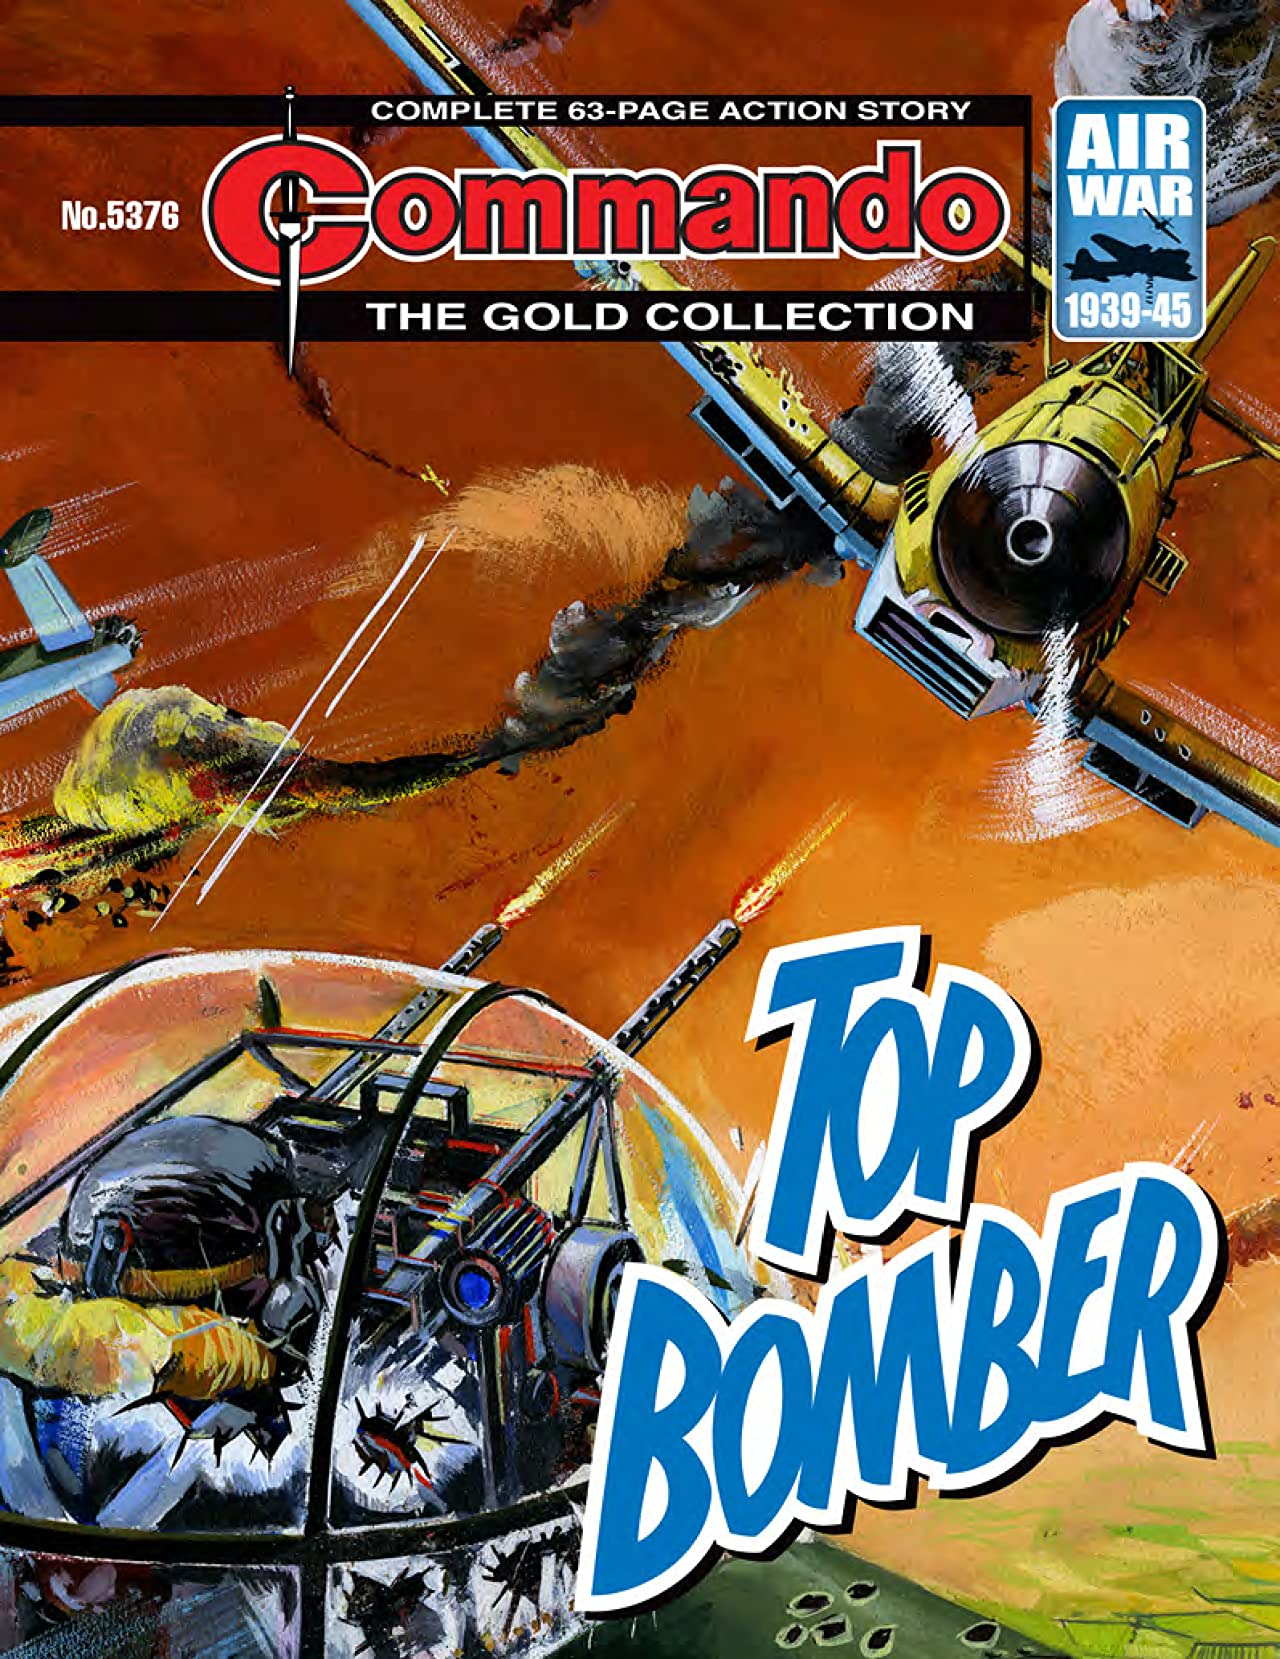 Commando No.5376: Top Bomber